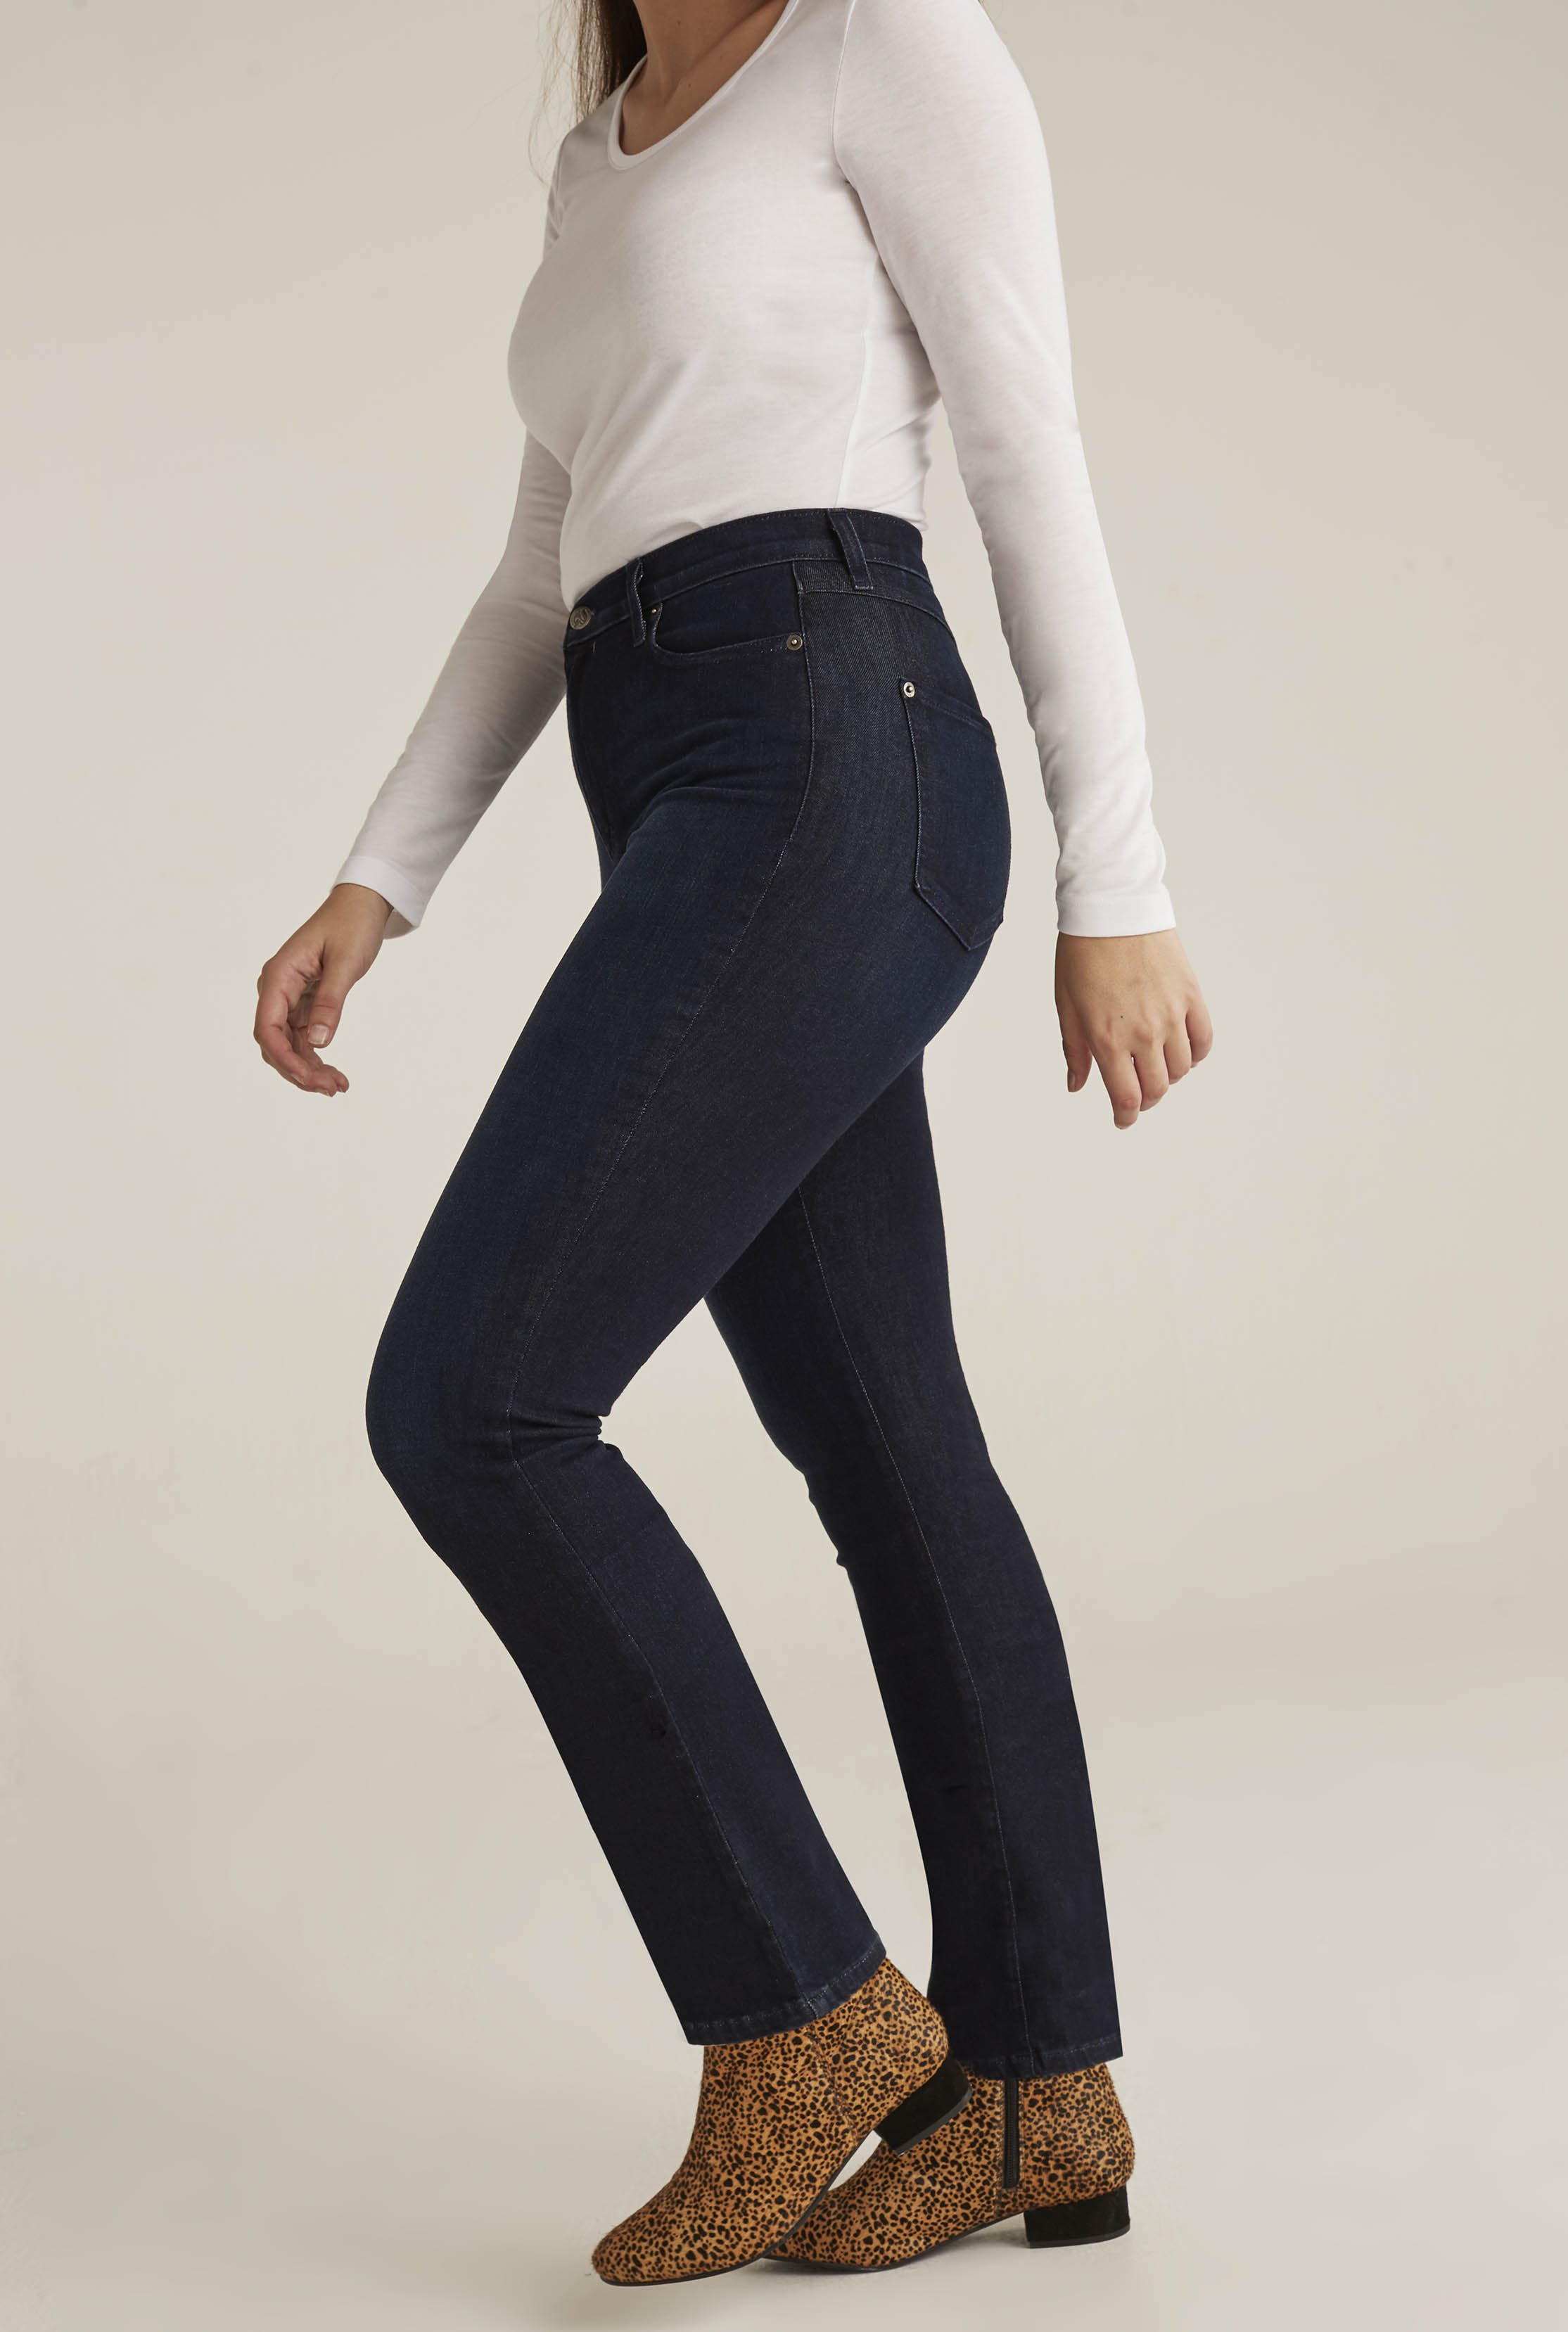 Yoga Alex Slim Bootcut Reunion Jean